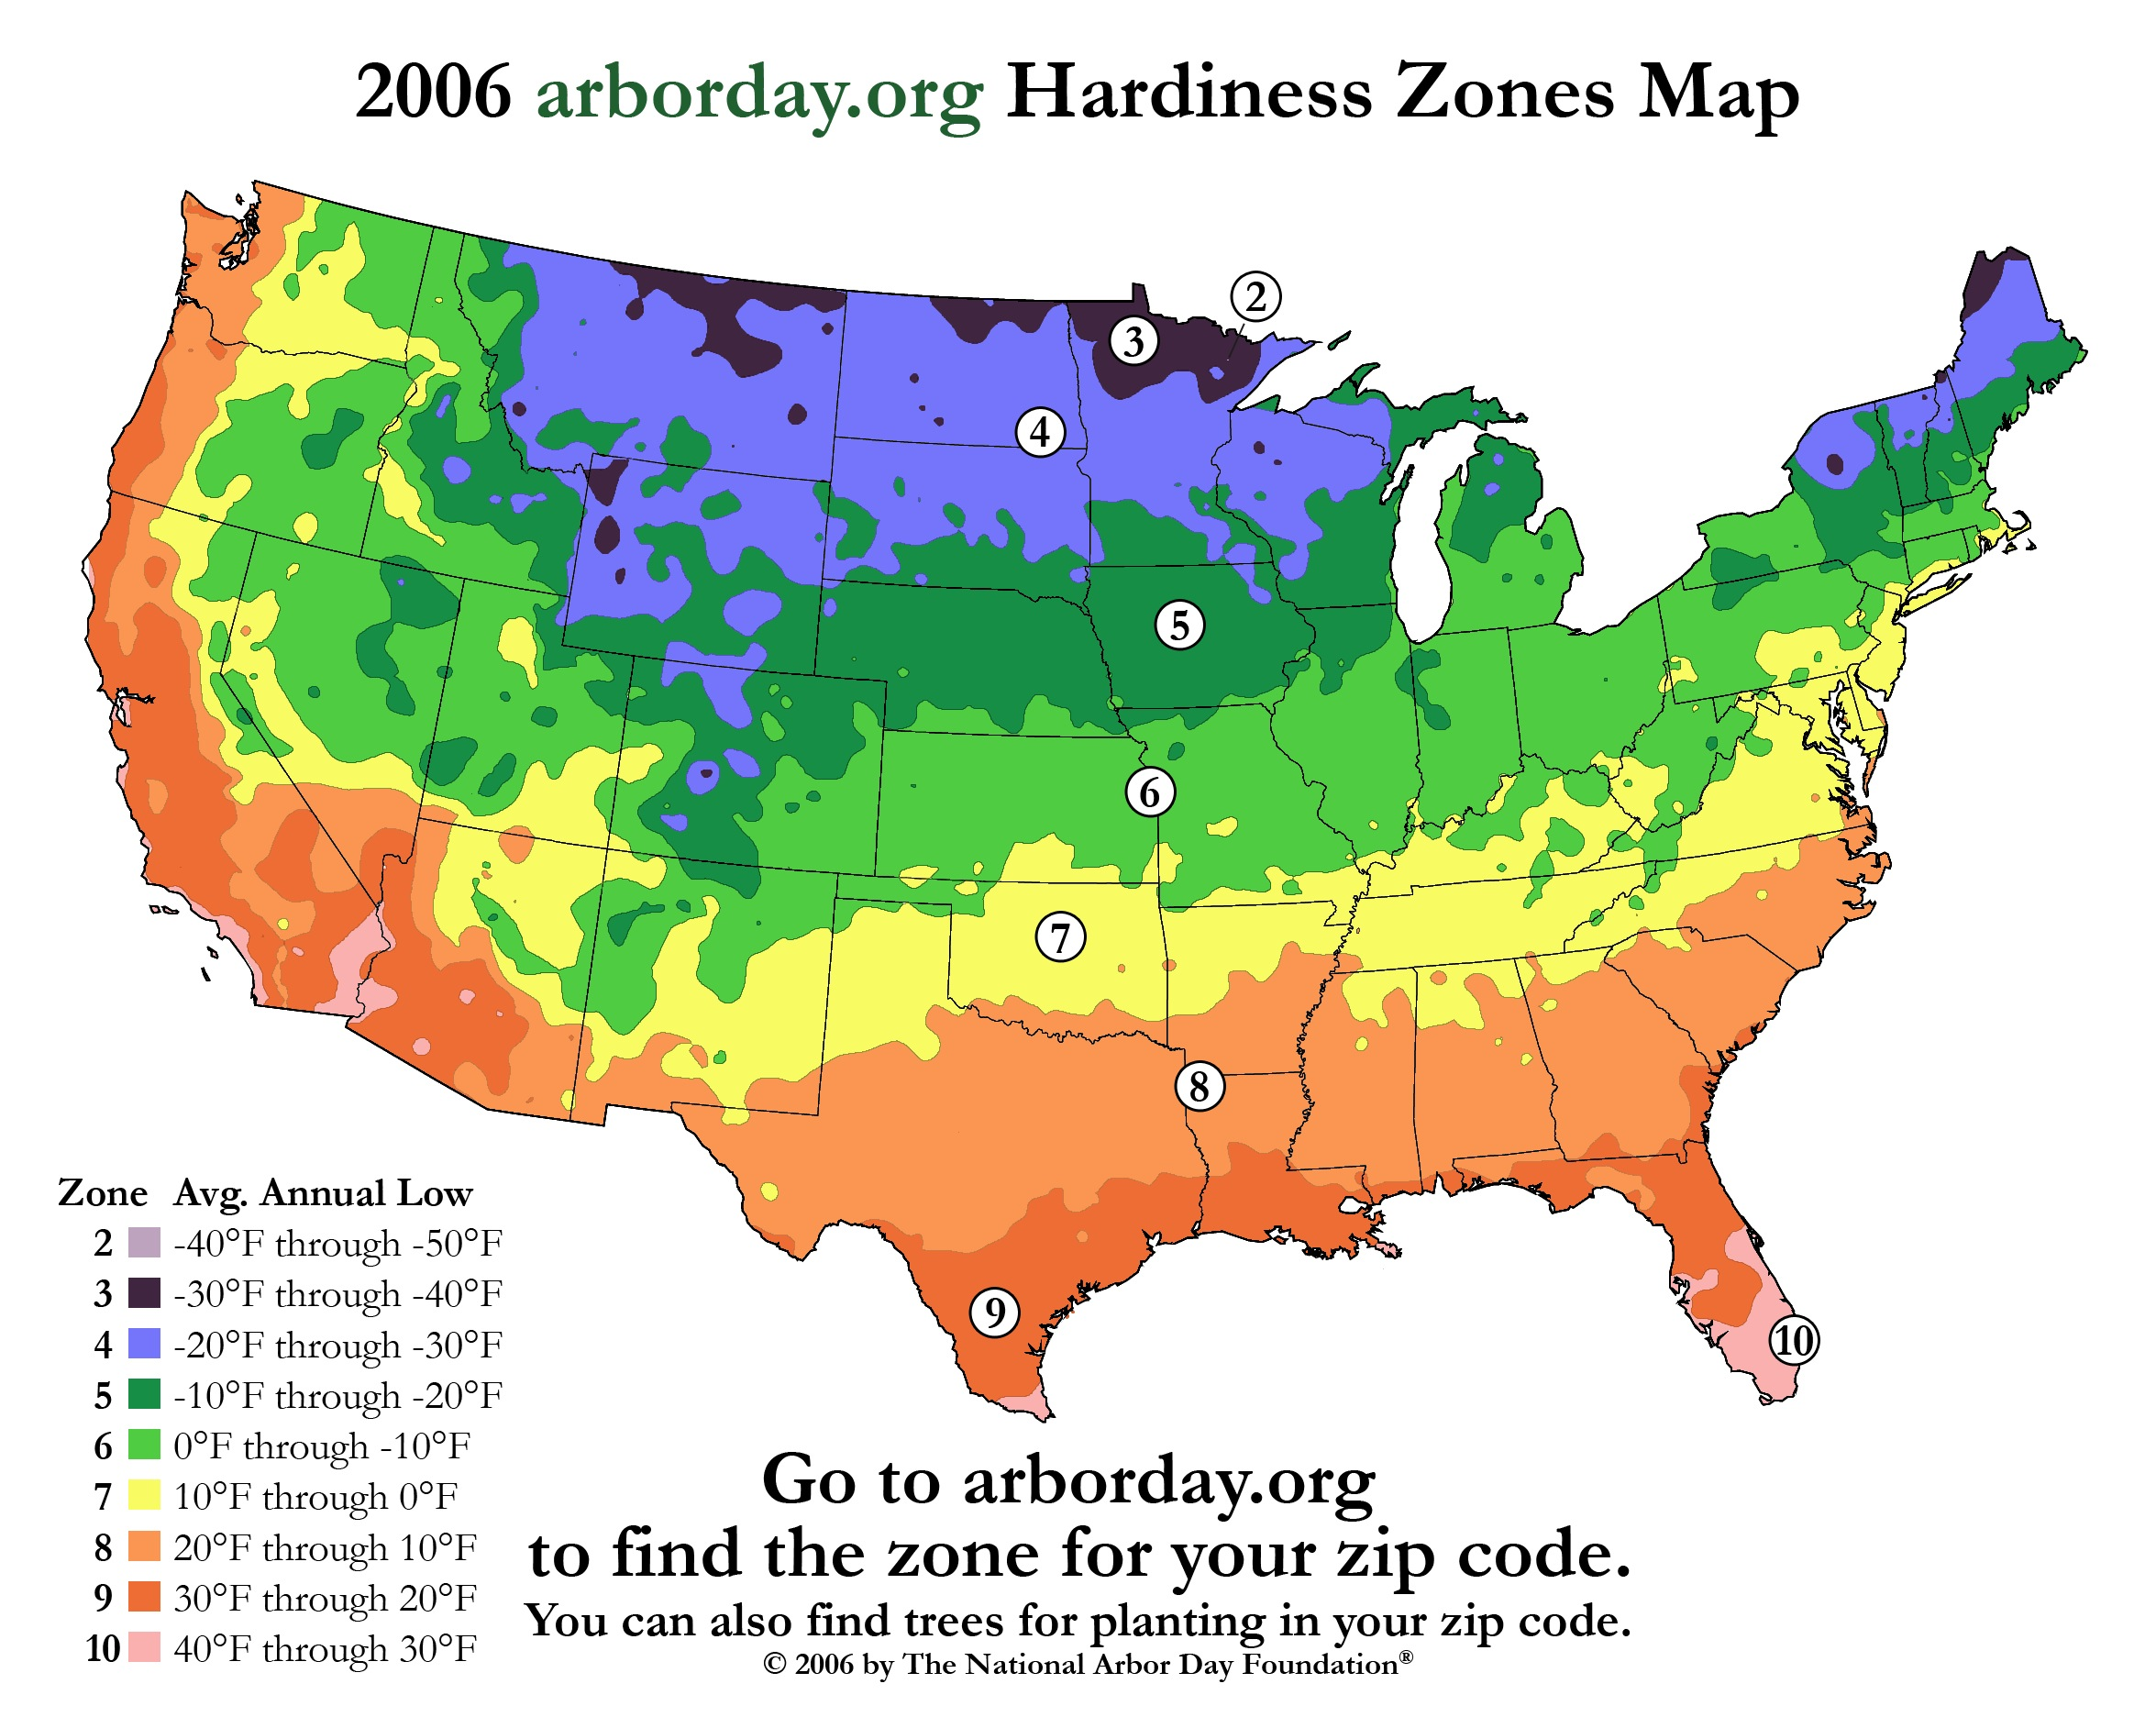 ... moved Northern Iowa from a solid 4 to a 5 on its hardiness zone map